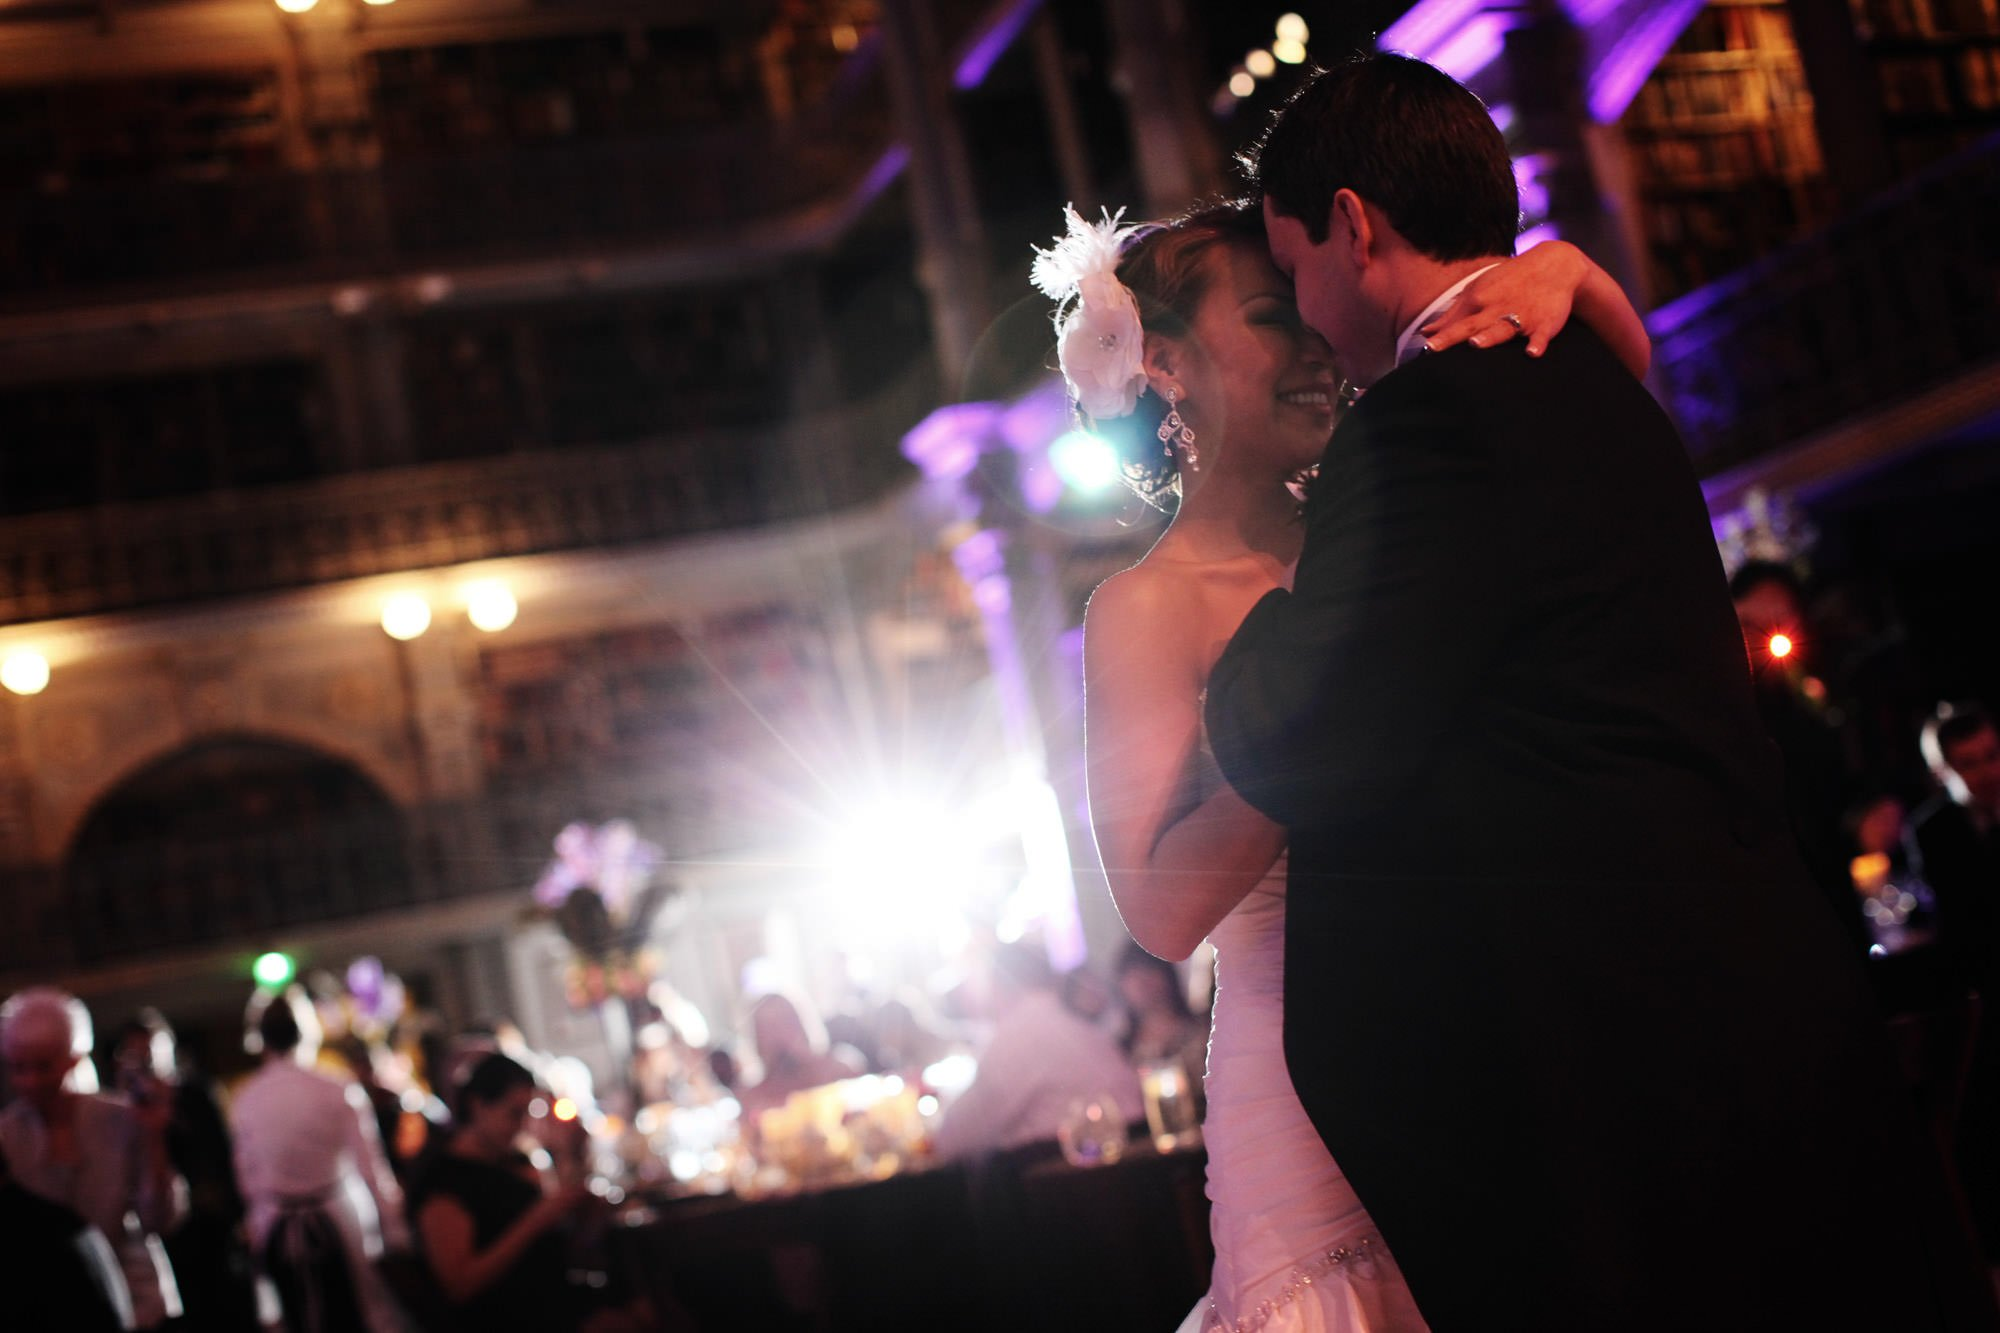 The couple shares their first dance during their George Peabody Library Wedding reception.